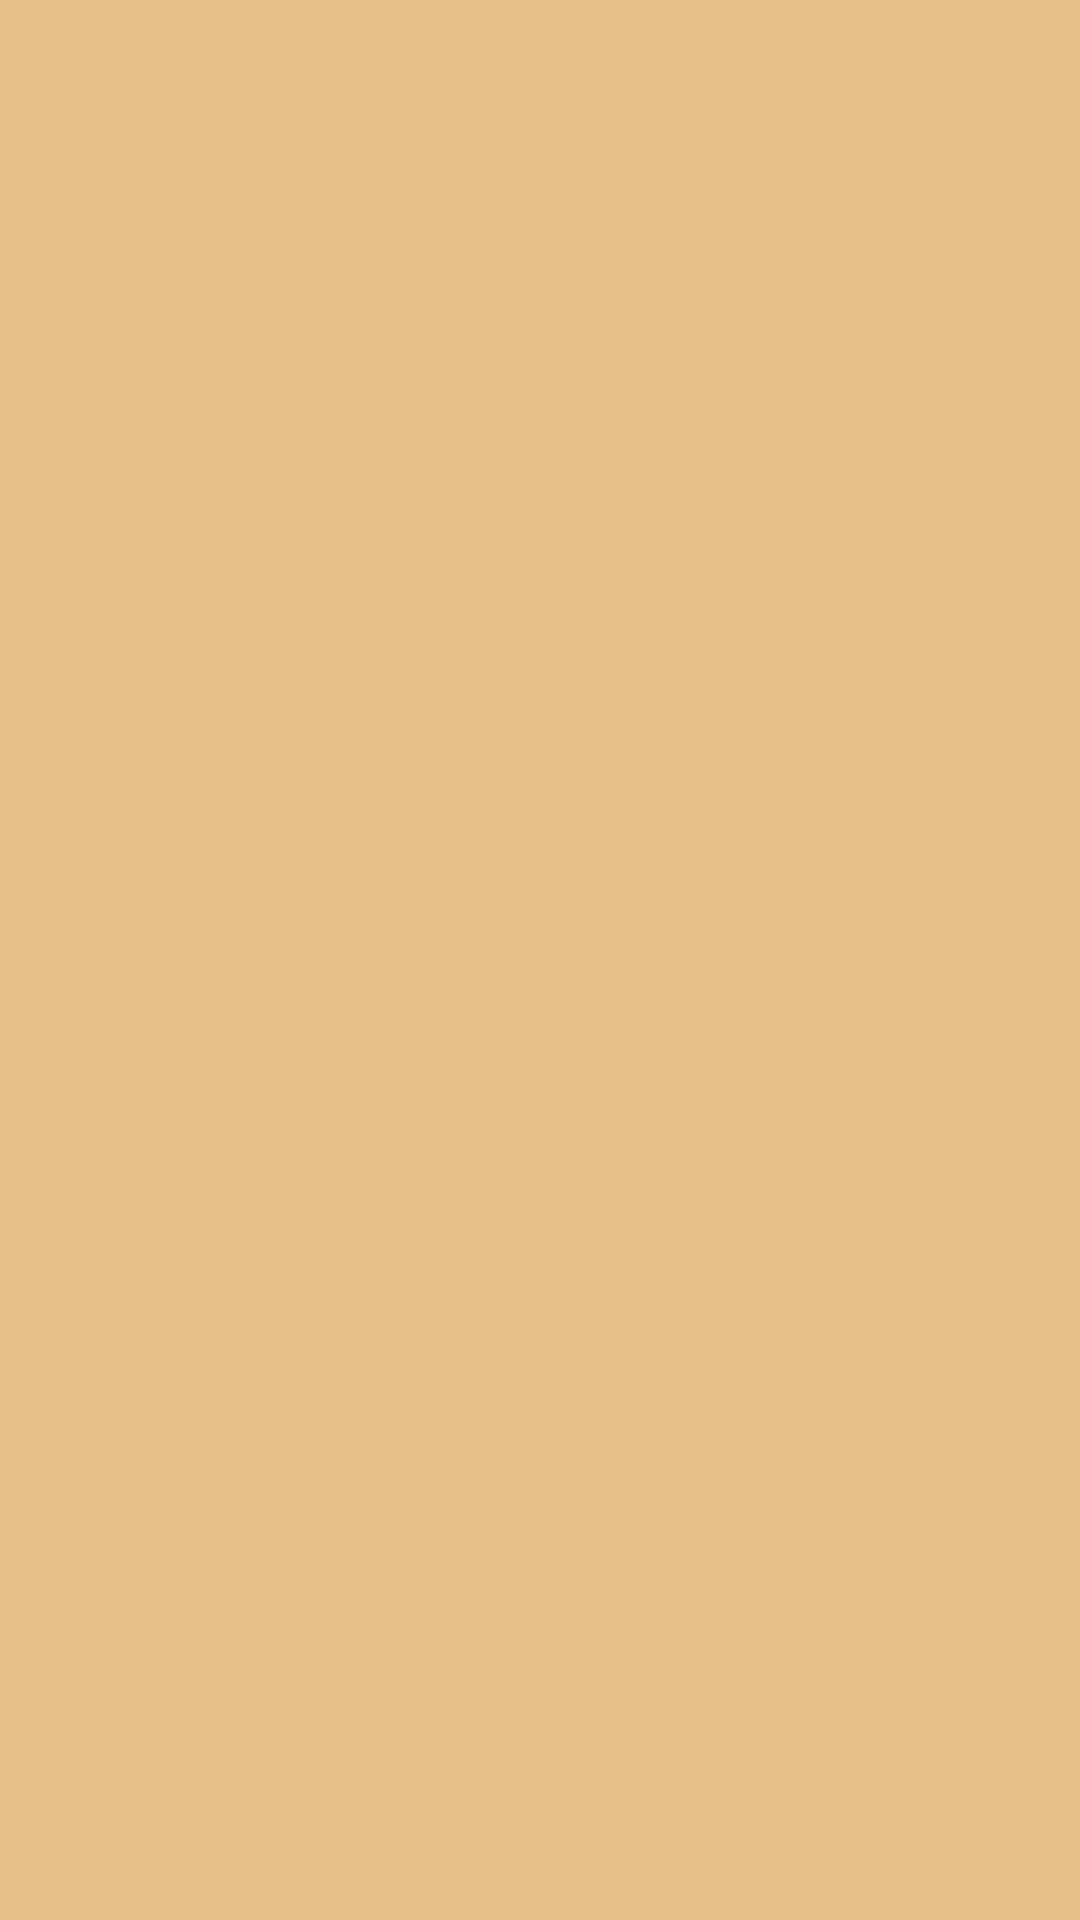 1080x1920 Pale Gold Solid Color Background